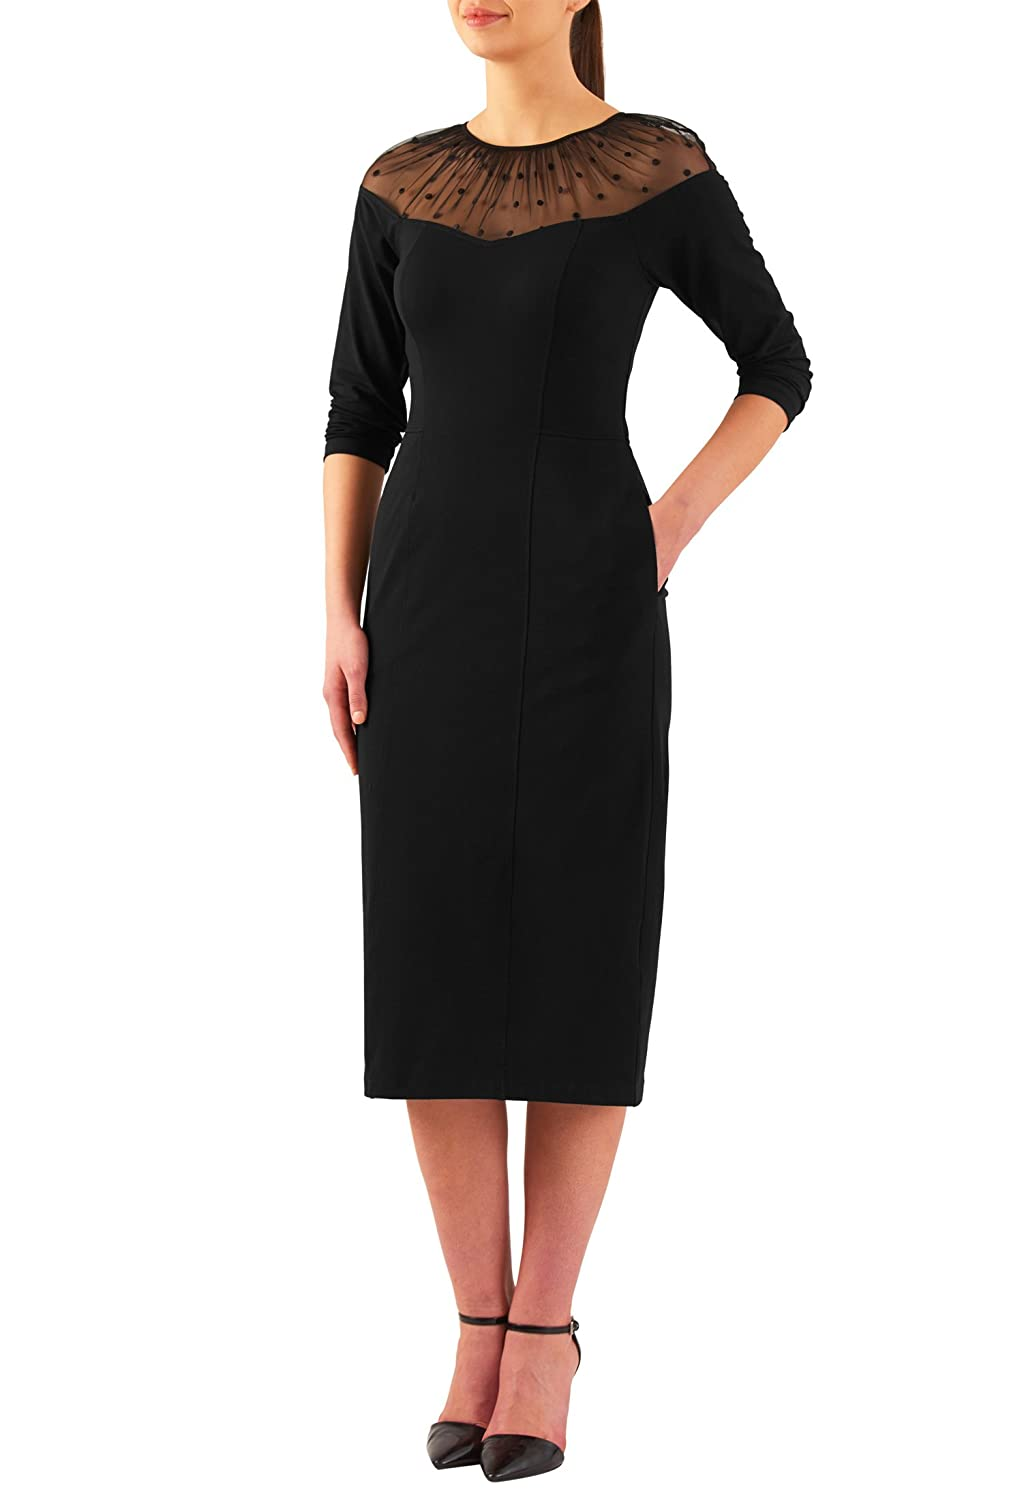 Vintage Evening Dresses Polka dot illusion cotton knit sheath dress $52.95 AT vintagedancer.com